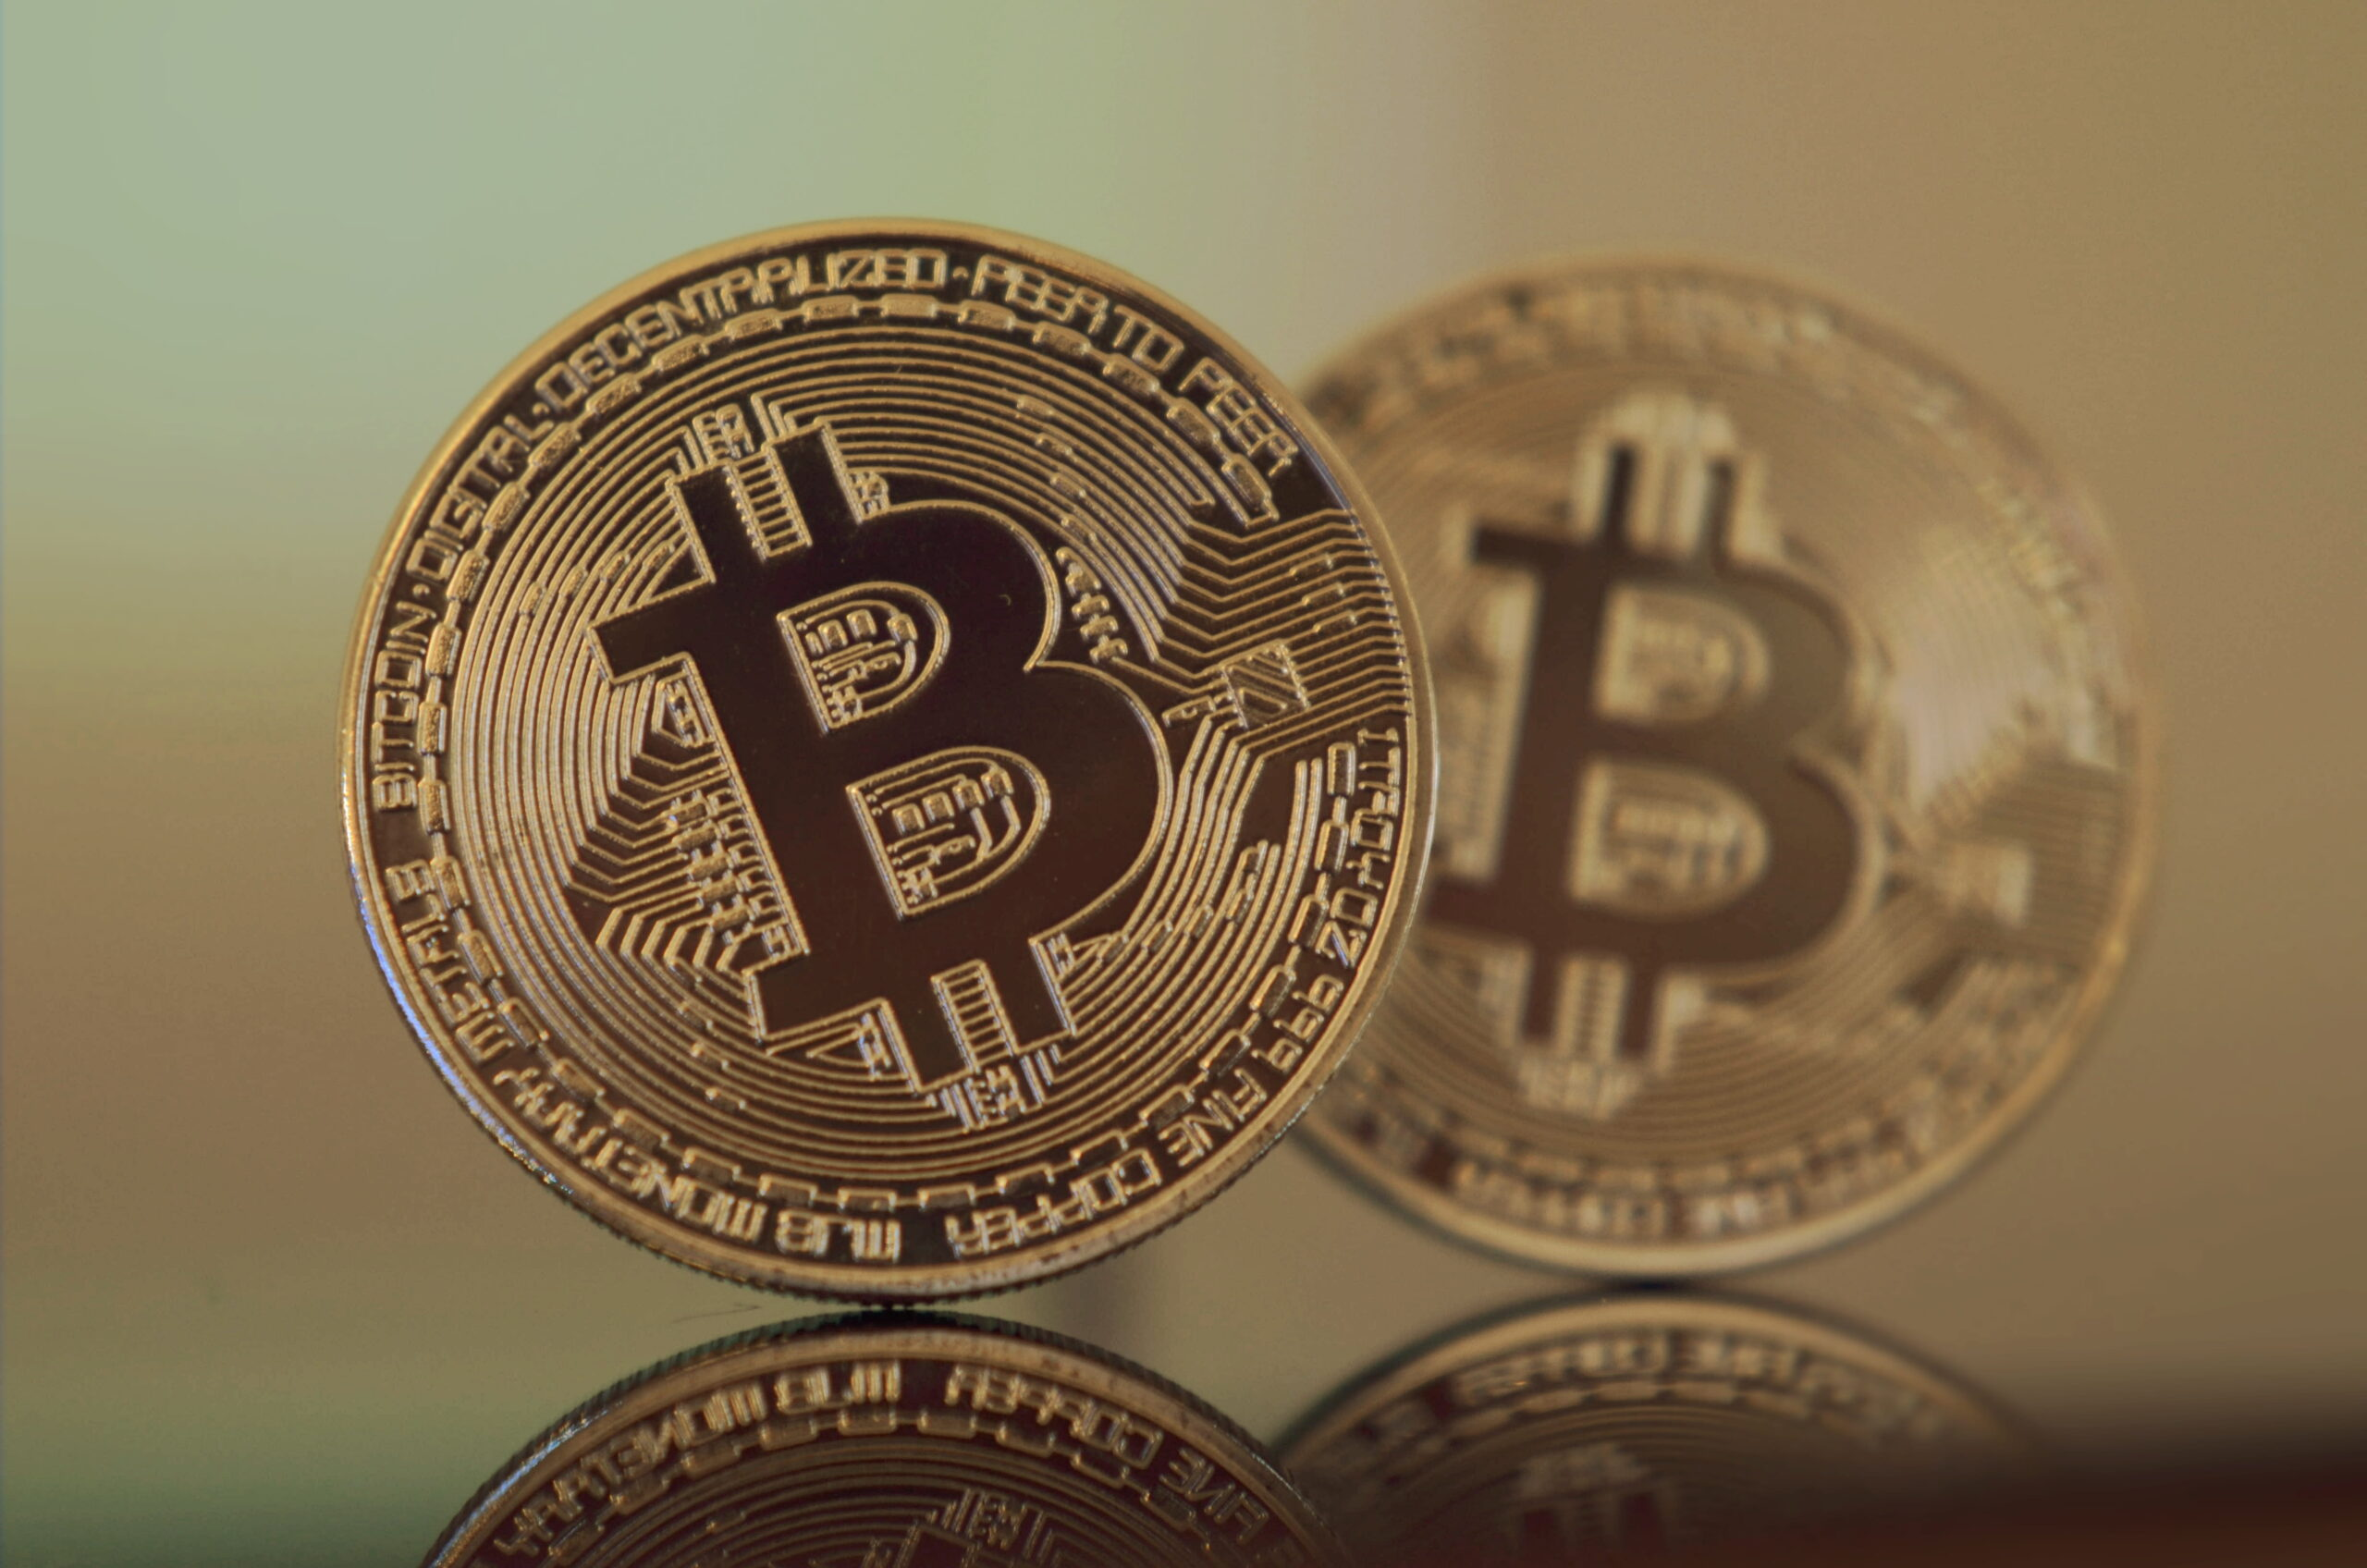 Money and anxiety in Kazakhstan as cryptocurrency mining takes hold